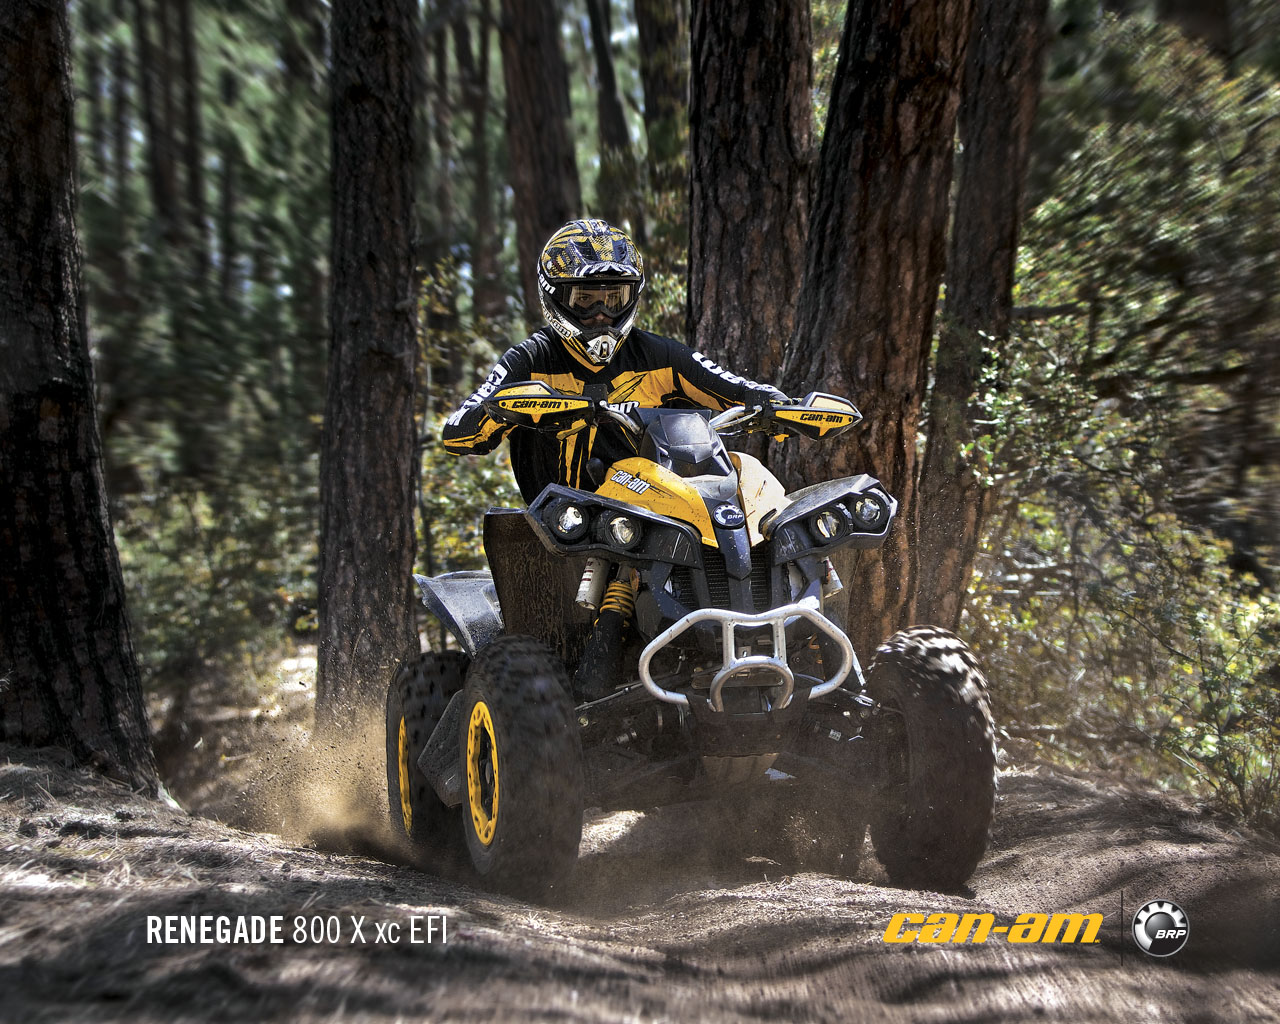 CAN-AM BOMBARDIER Renegade 800 R X xc 2011 photo 7